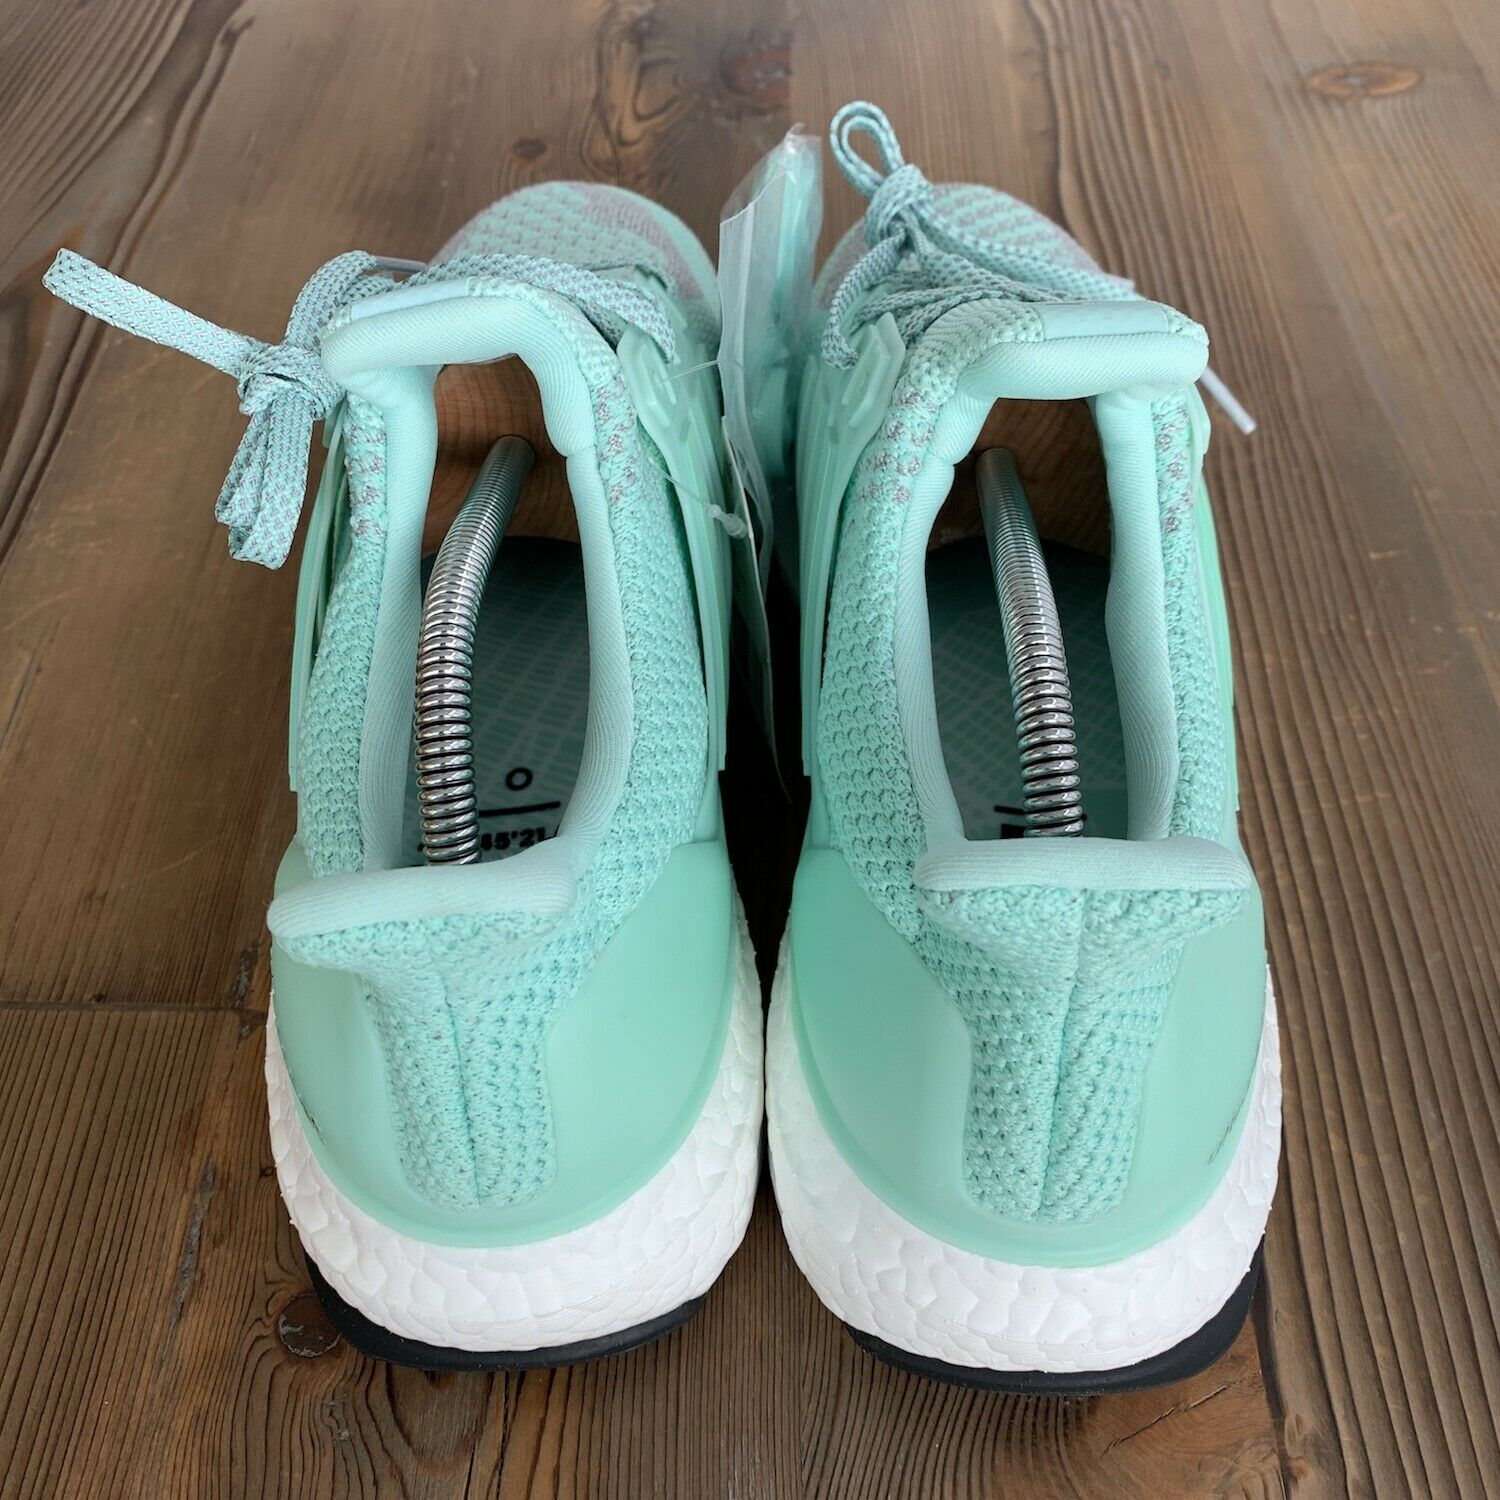 new product 8f717 c9c23 Adidas UltraBoost Running shoes shoes shoes Lady Liberty ...